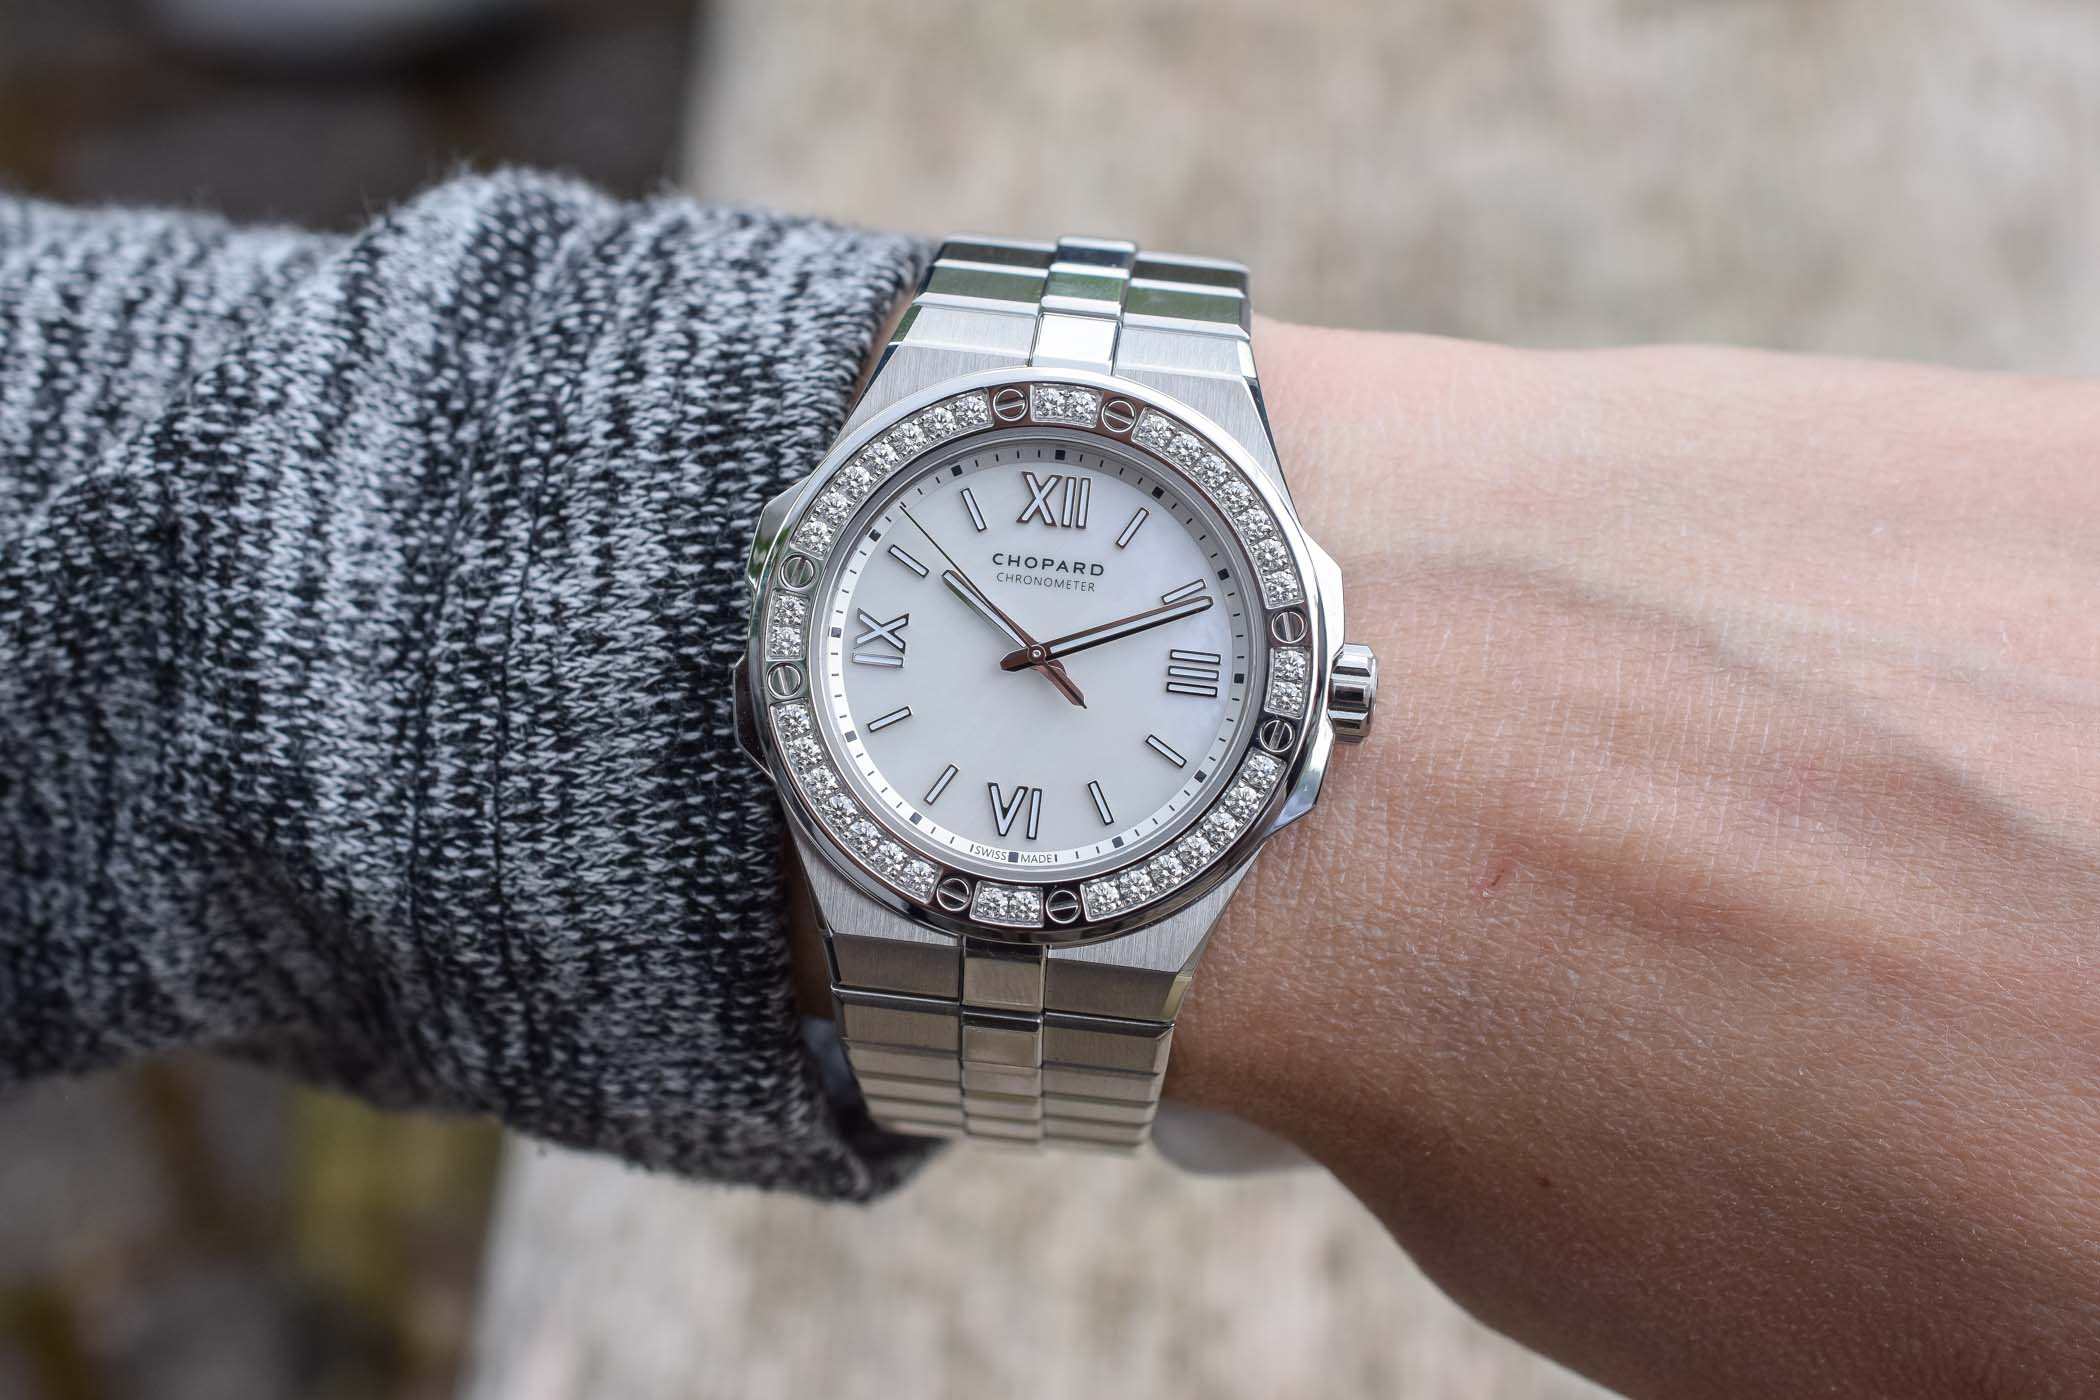 Chopard Alpine Eagle 36mm - Luxury Sports Watch Collection - Review - 1